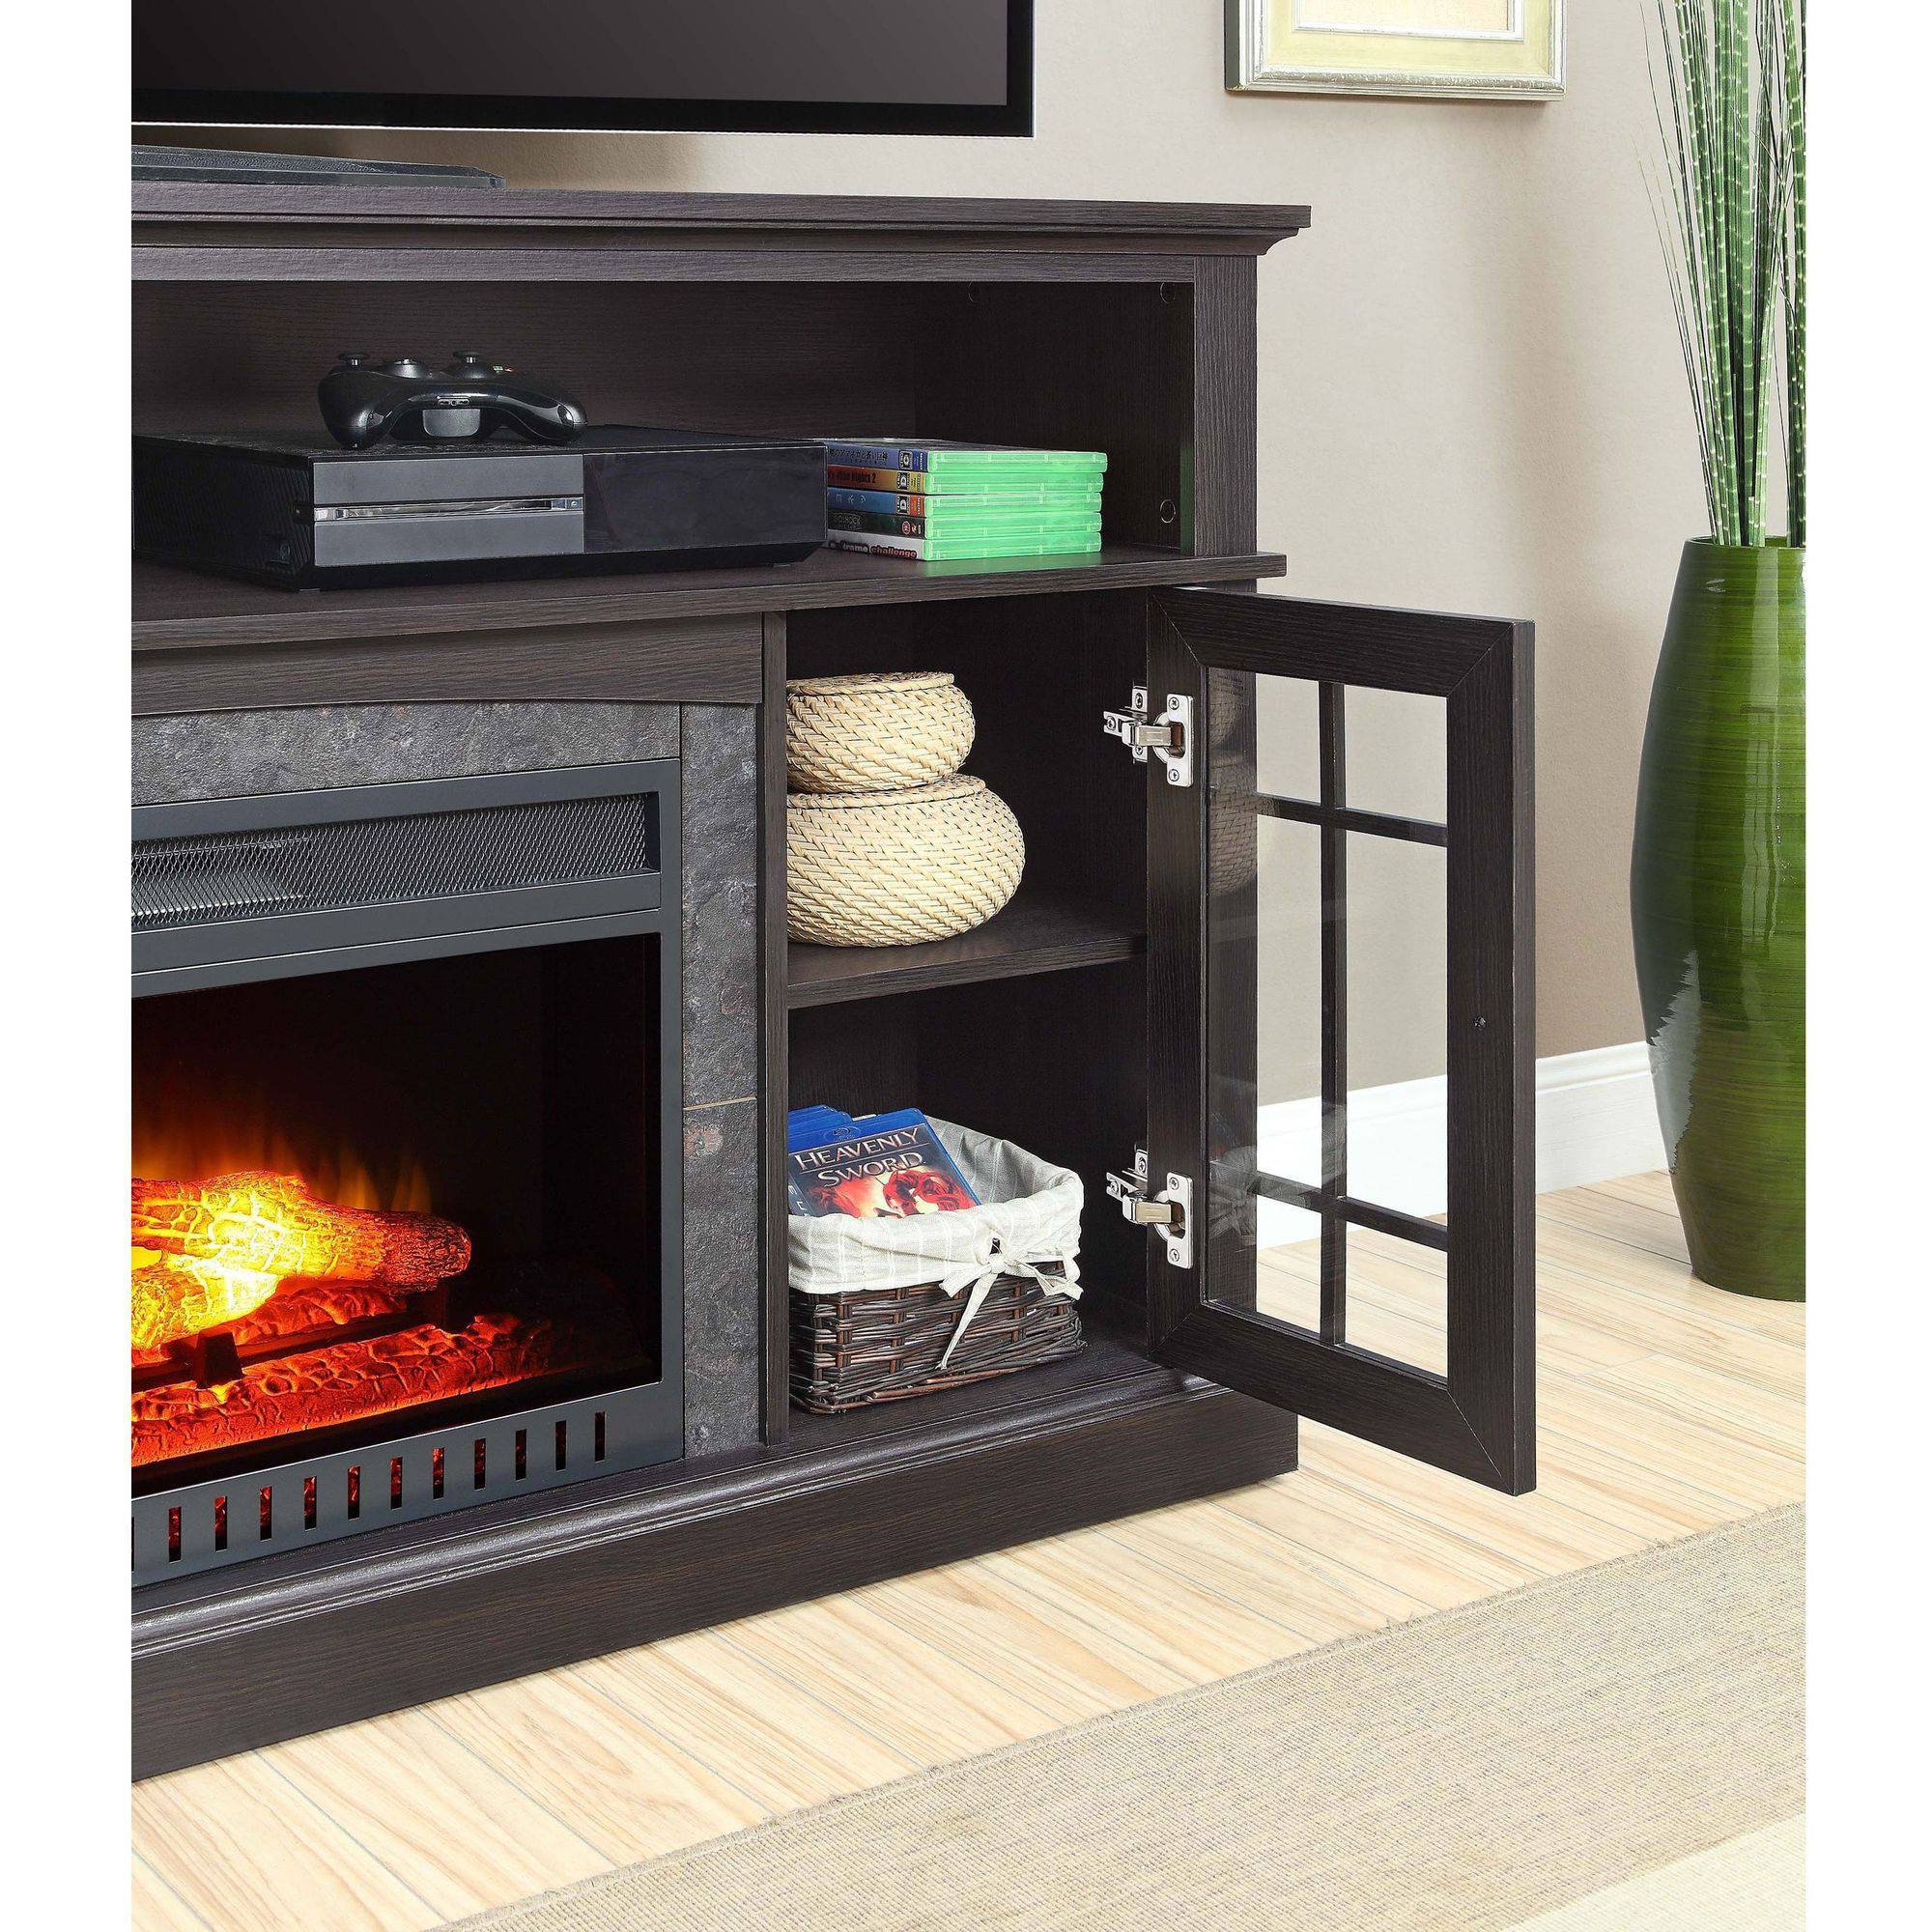 "Buy Better Homes and Gardens Mission Media Fireplace for TVs up to 65"" at Walmart.com"